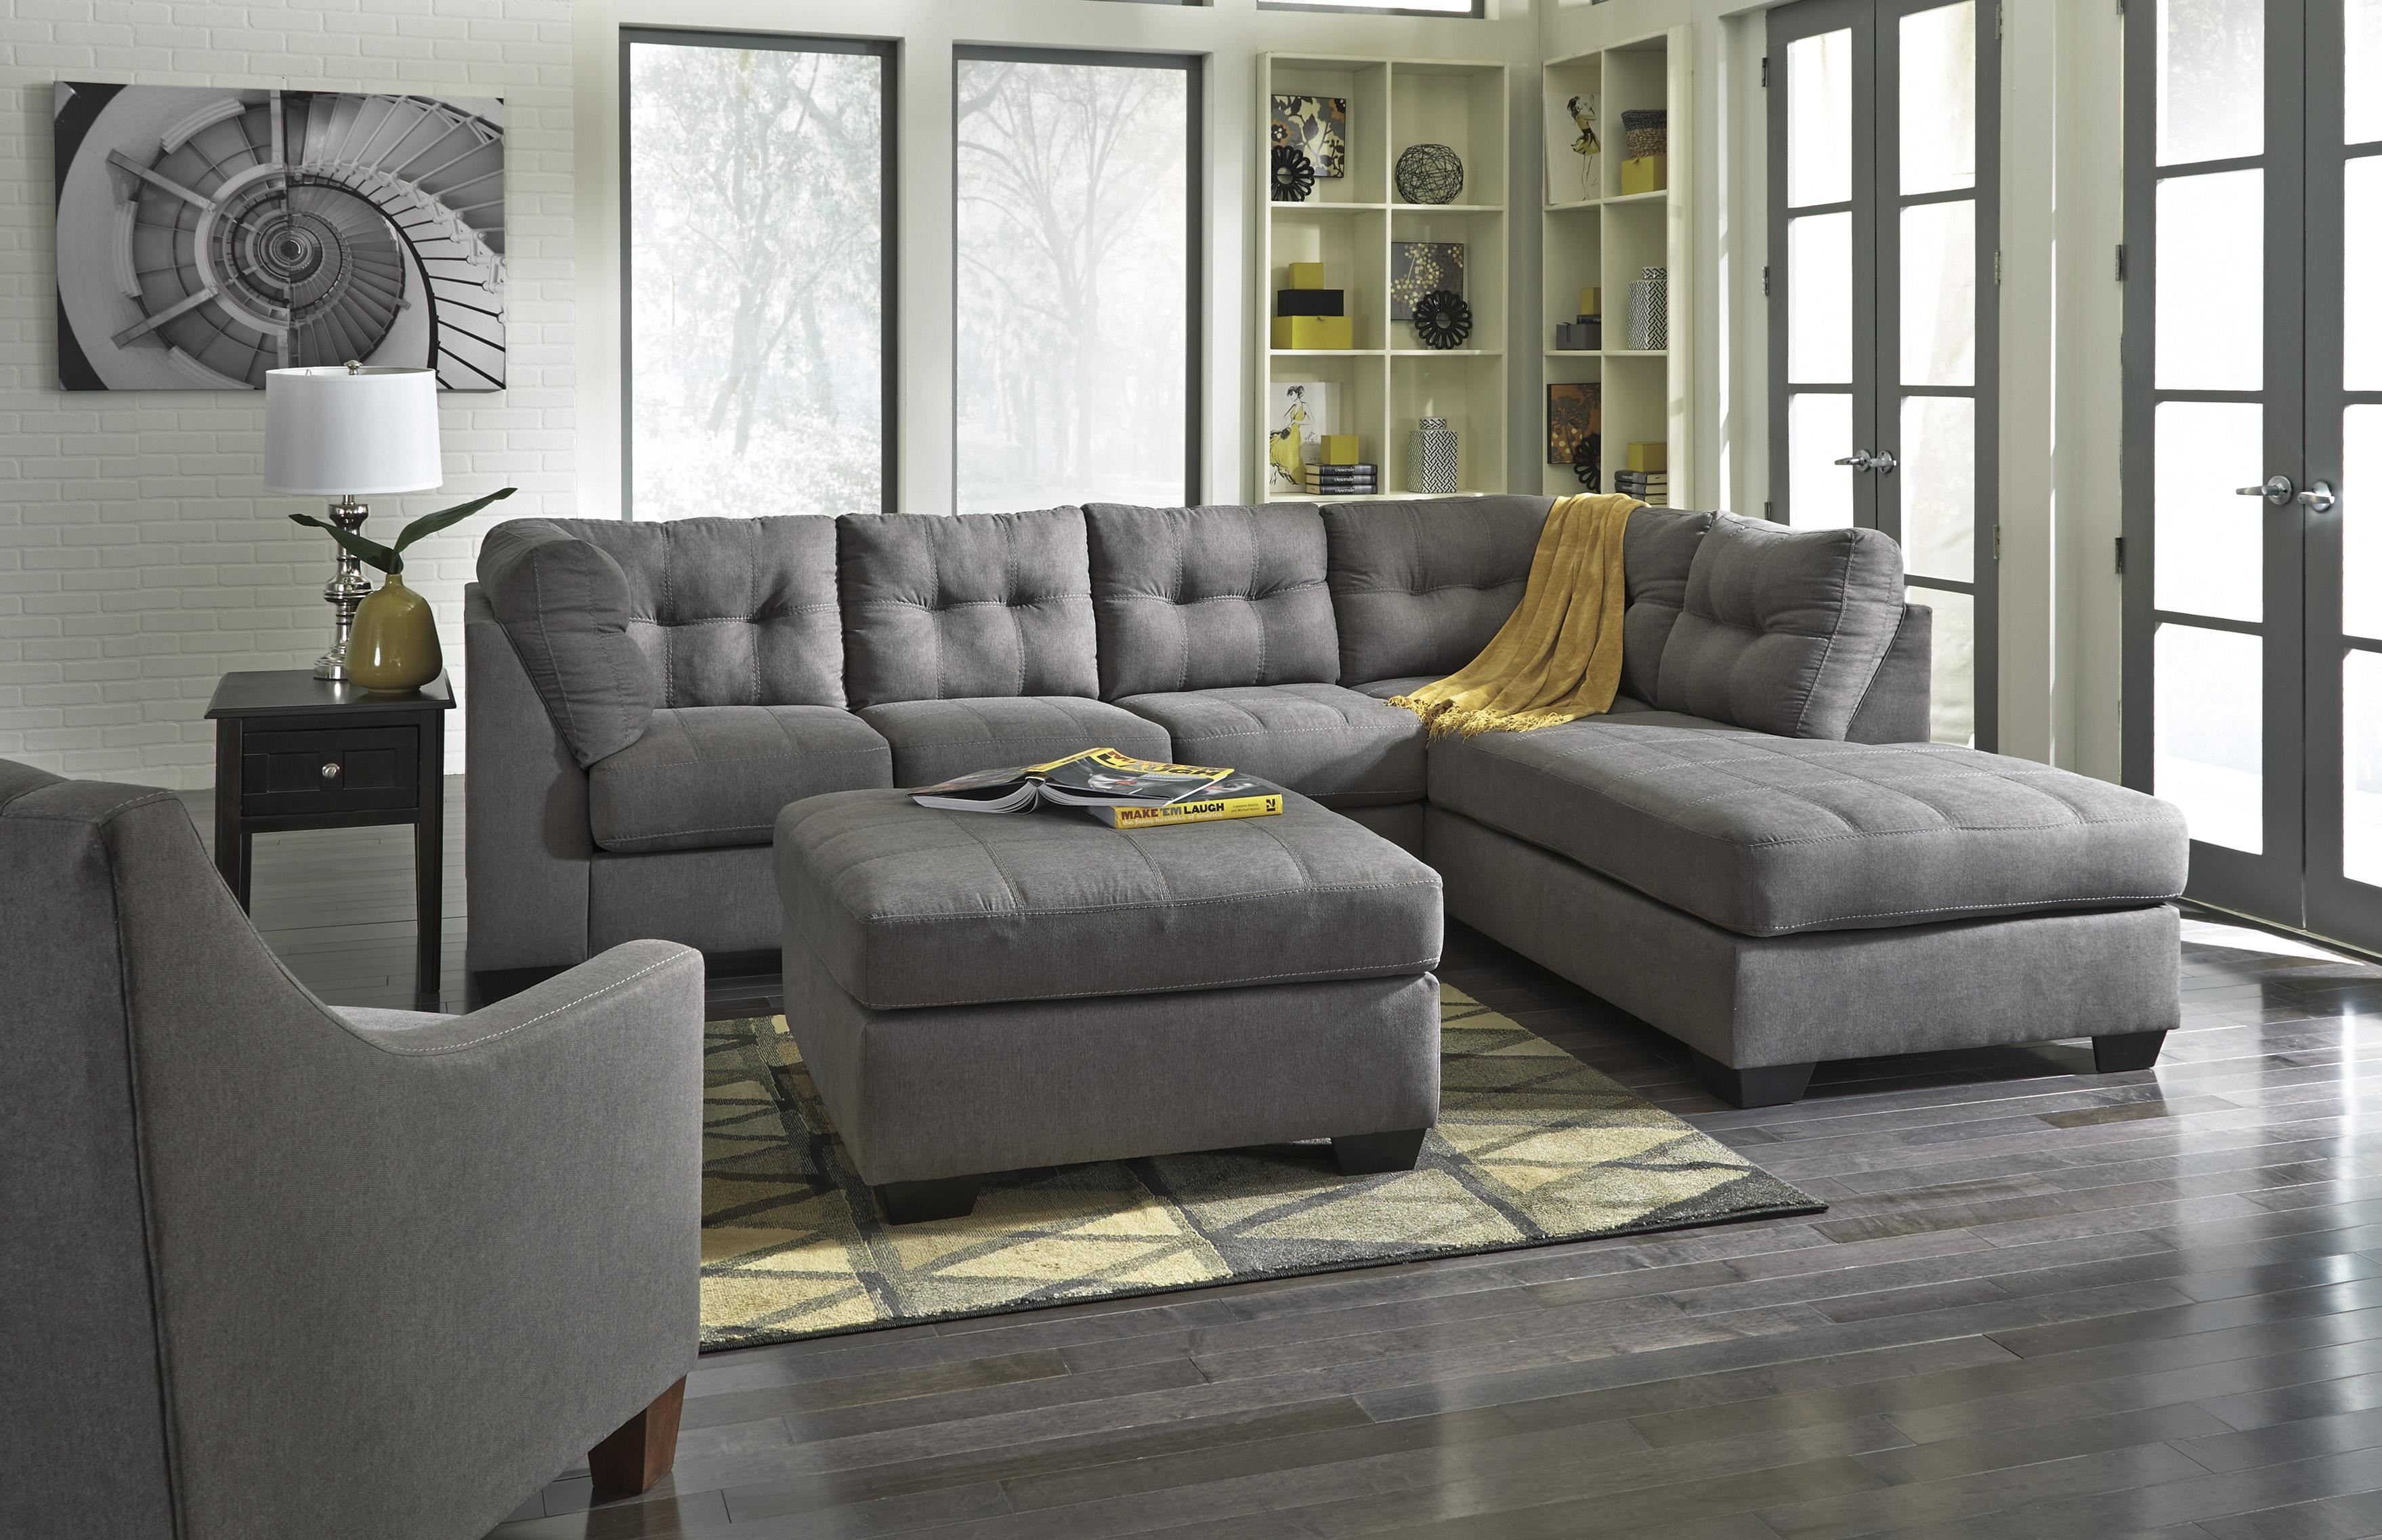 Benchcraft Maier – Charcoal 2 Piece Sectional With Right Chaise In Sectionals With Chaise And Ottoman (Image 2 of 10)